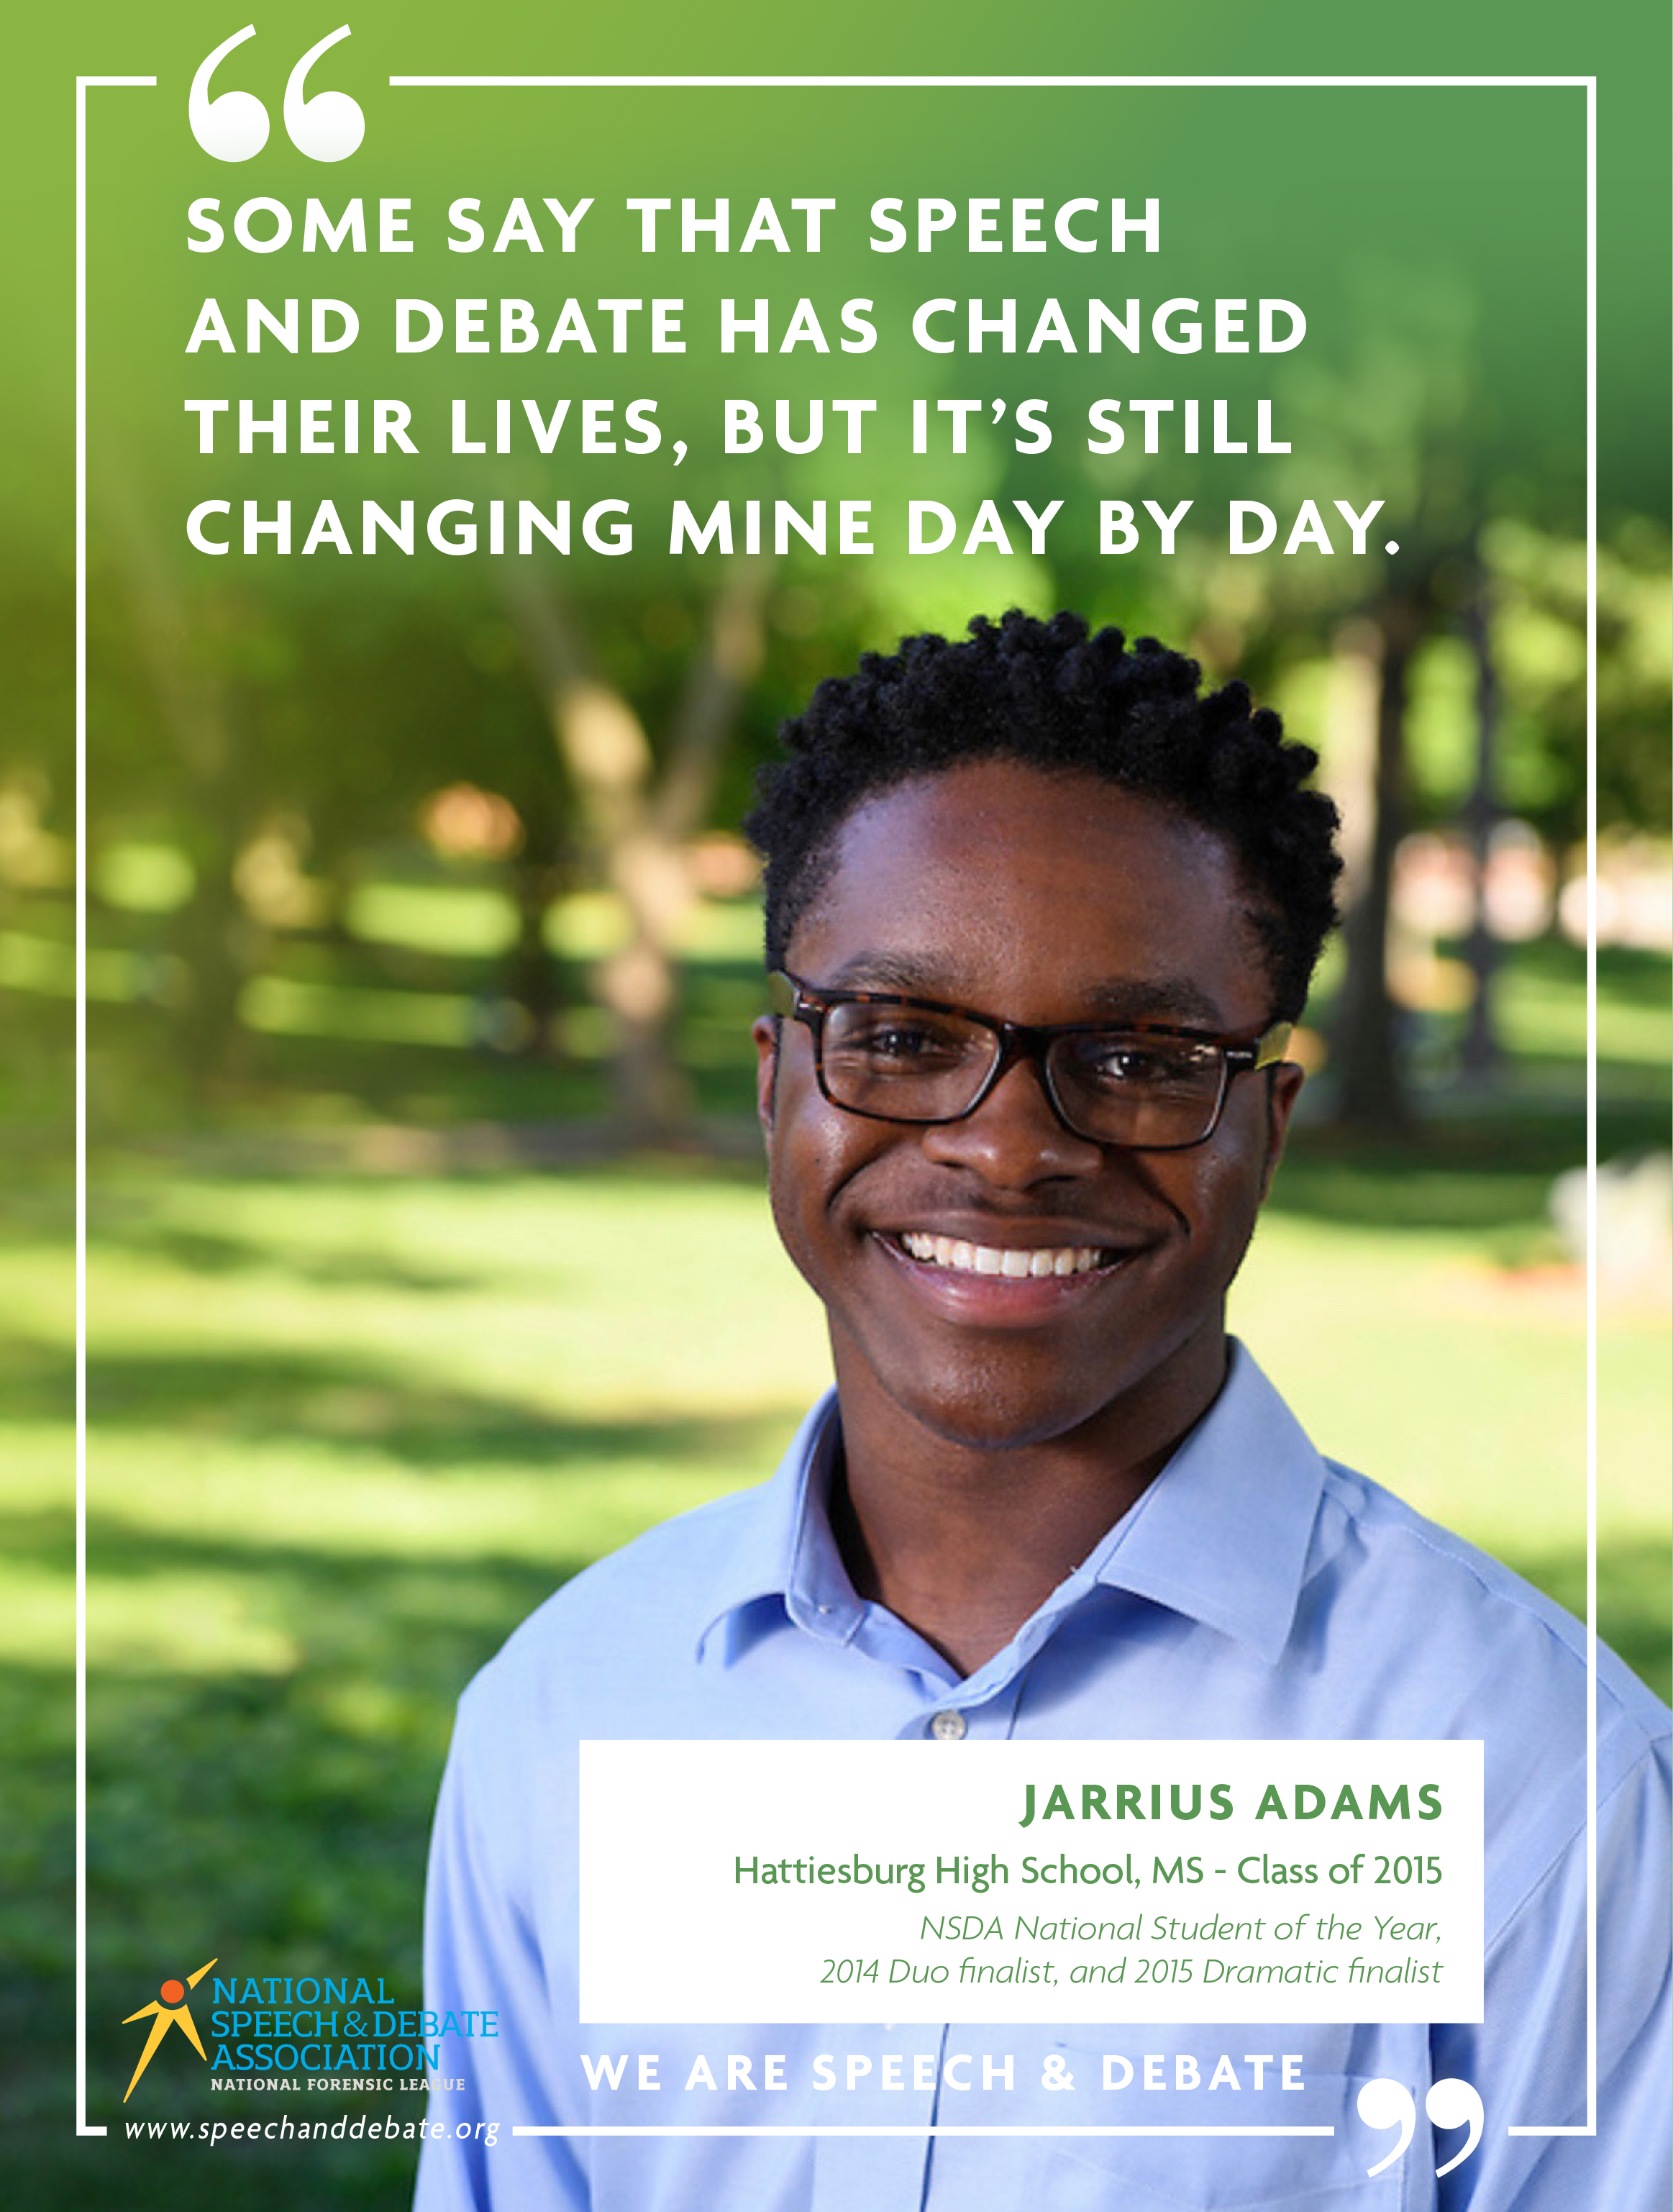 """SOME SAY THAT SPEECH AND DEBATE HAS CHANGED THEIR LIVES, BUT IT'S STILL CHANGING MINE DAY BY DAY."" - Jarrius Adams"